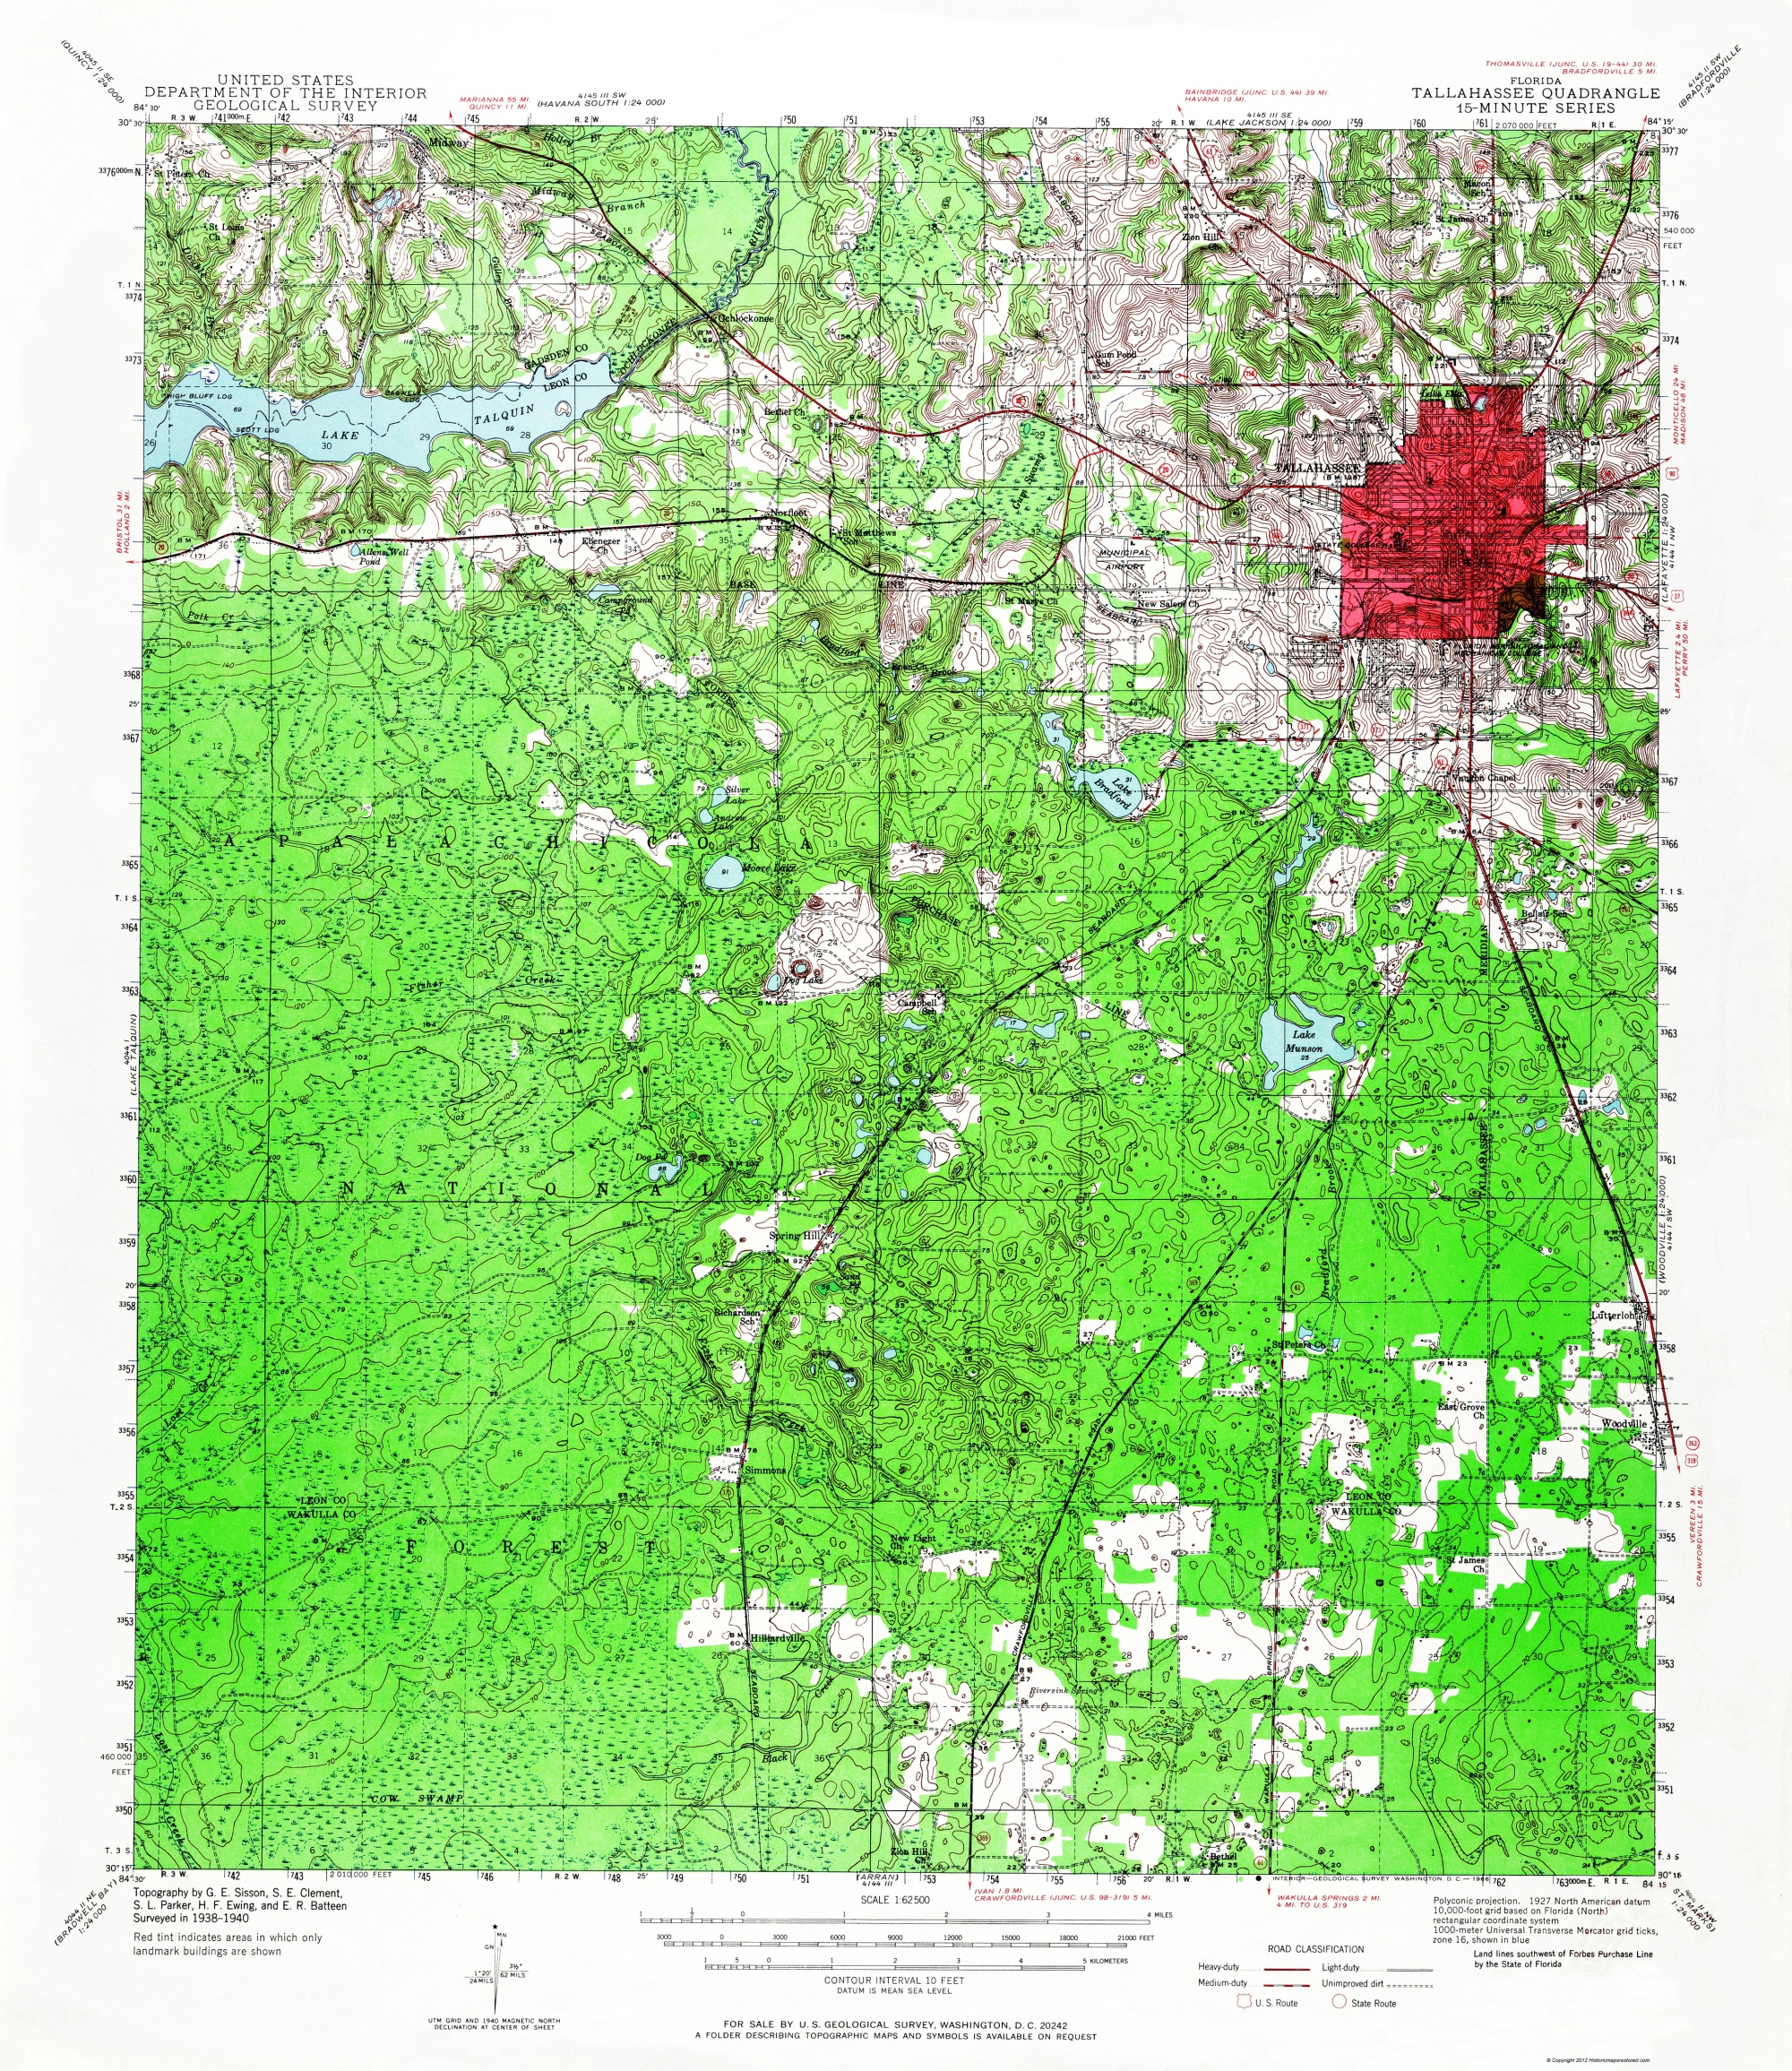 Old Topographical Map - Tallahassee Florida 1940